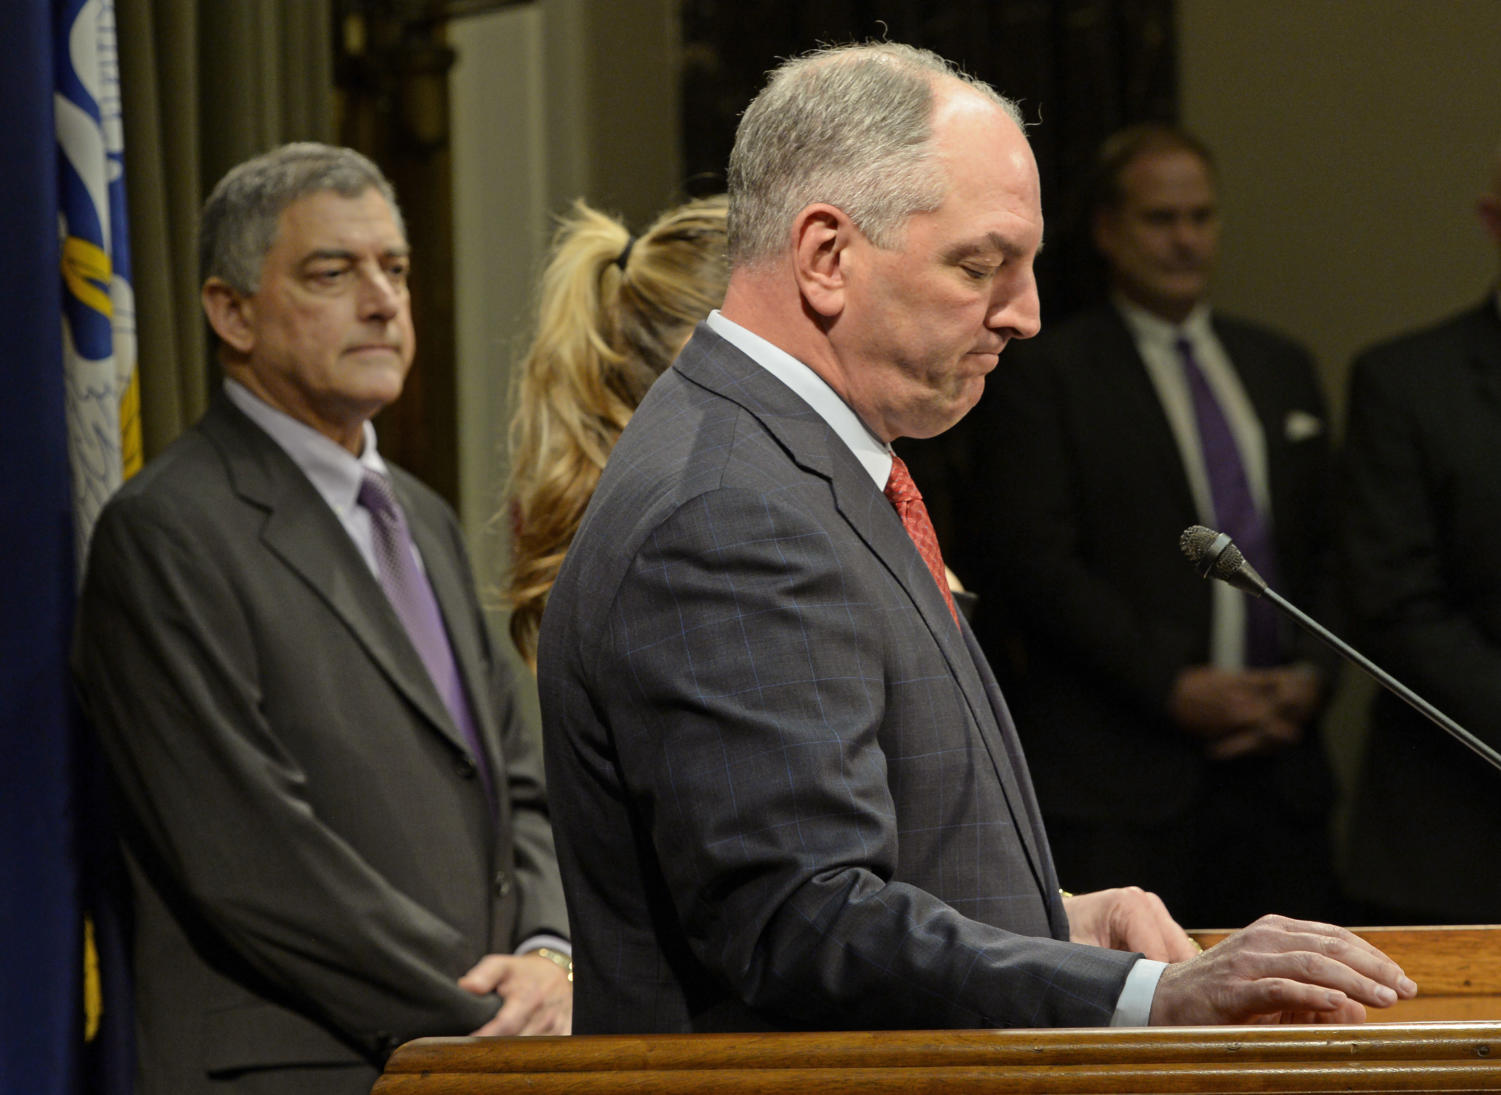 Gov. John Bel Edwards pauses before speaking at a press conference after the legislature adjourned sine die to end the special session to address the state's fiscal crisis Monday, March 5, 2018, in Baton Rouge, La. (Bill Feig/The Advocate via AP)